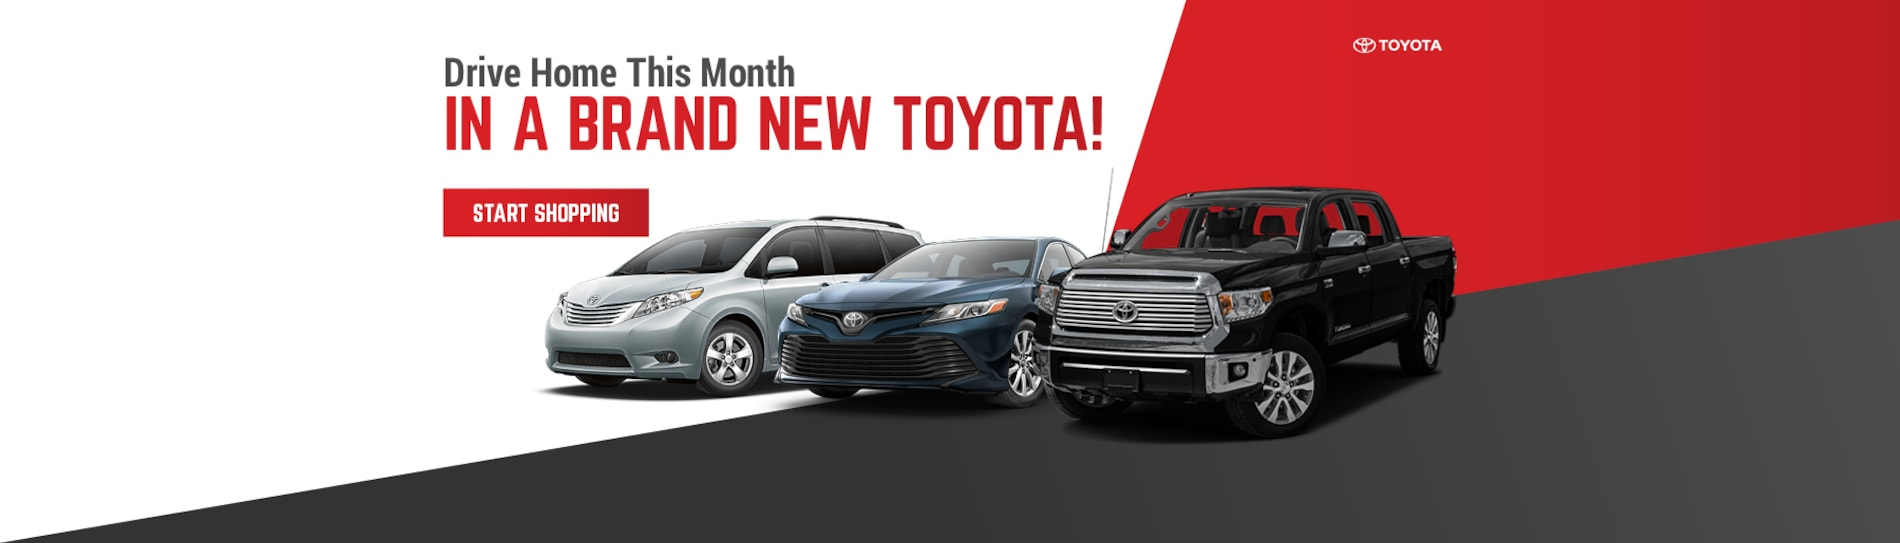 Dolan toyota new used car dealership in reno serving carson city and lake tahoe